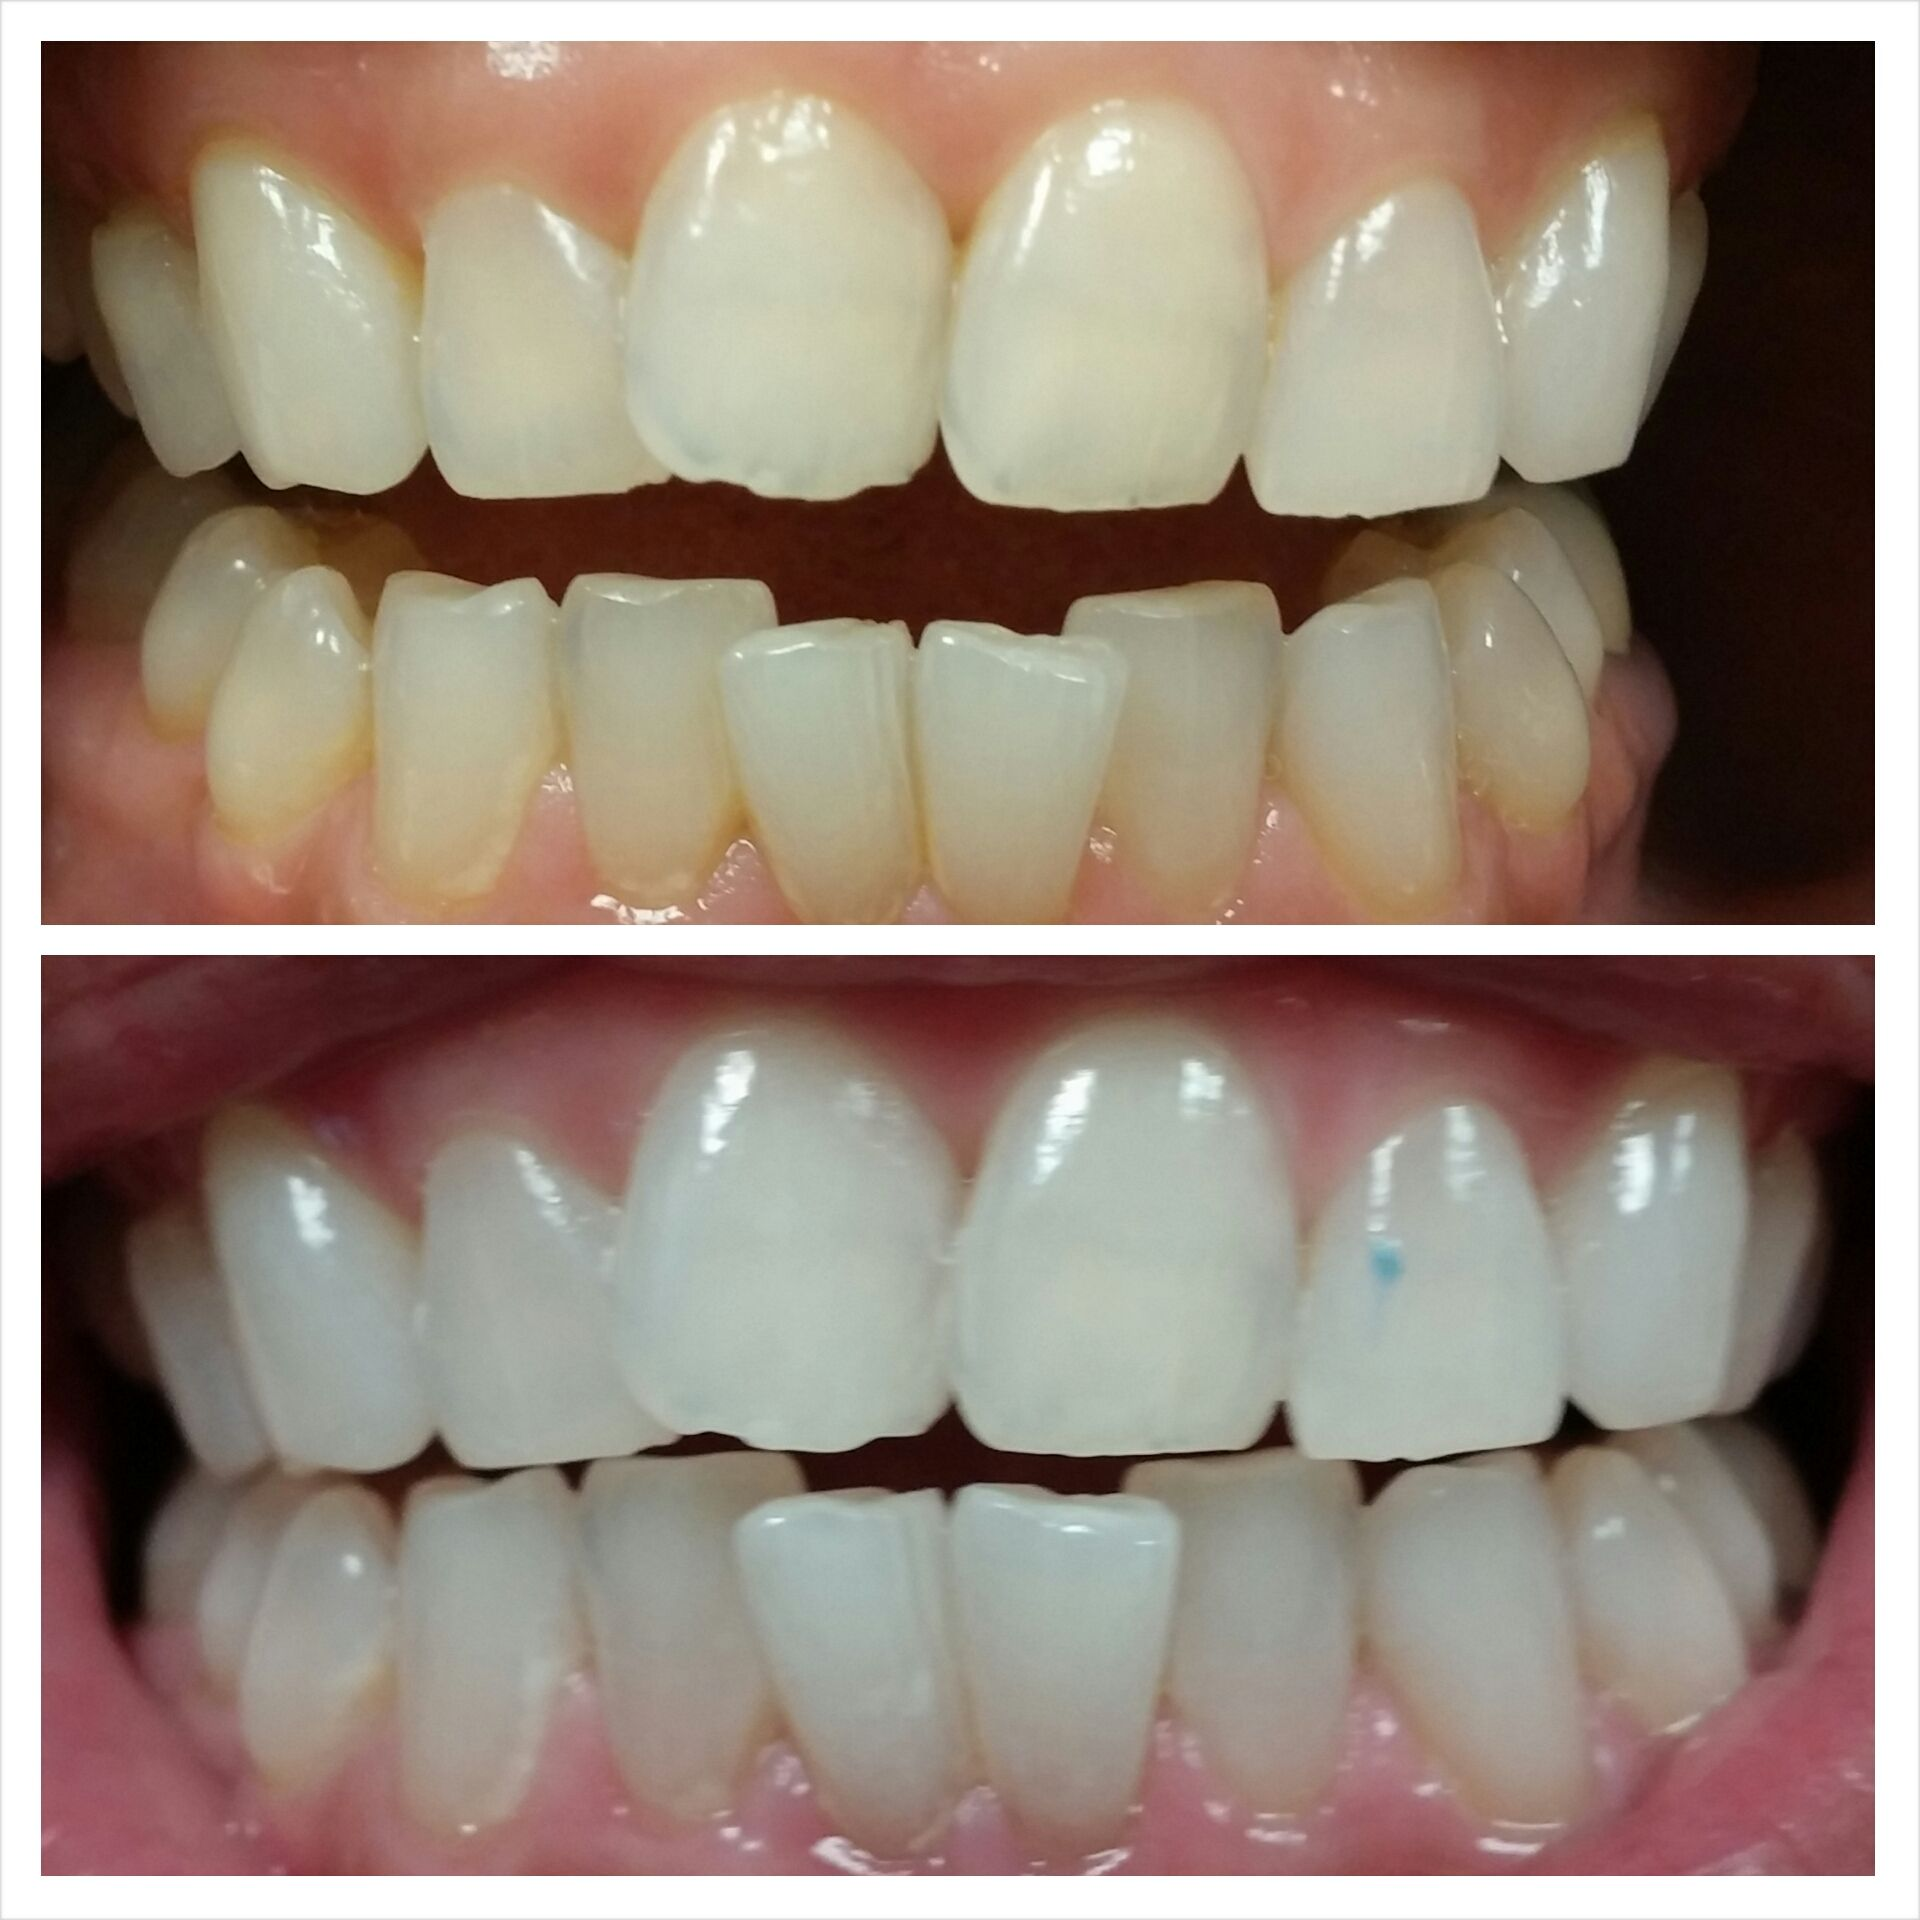 Colgate teeth whitening teeth whitening products pinterest teeth - Laser Whitening Is One Of The Newest Teeth Whitening Treatments